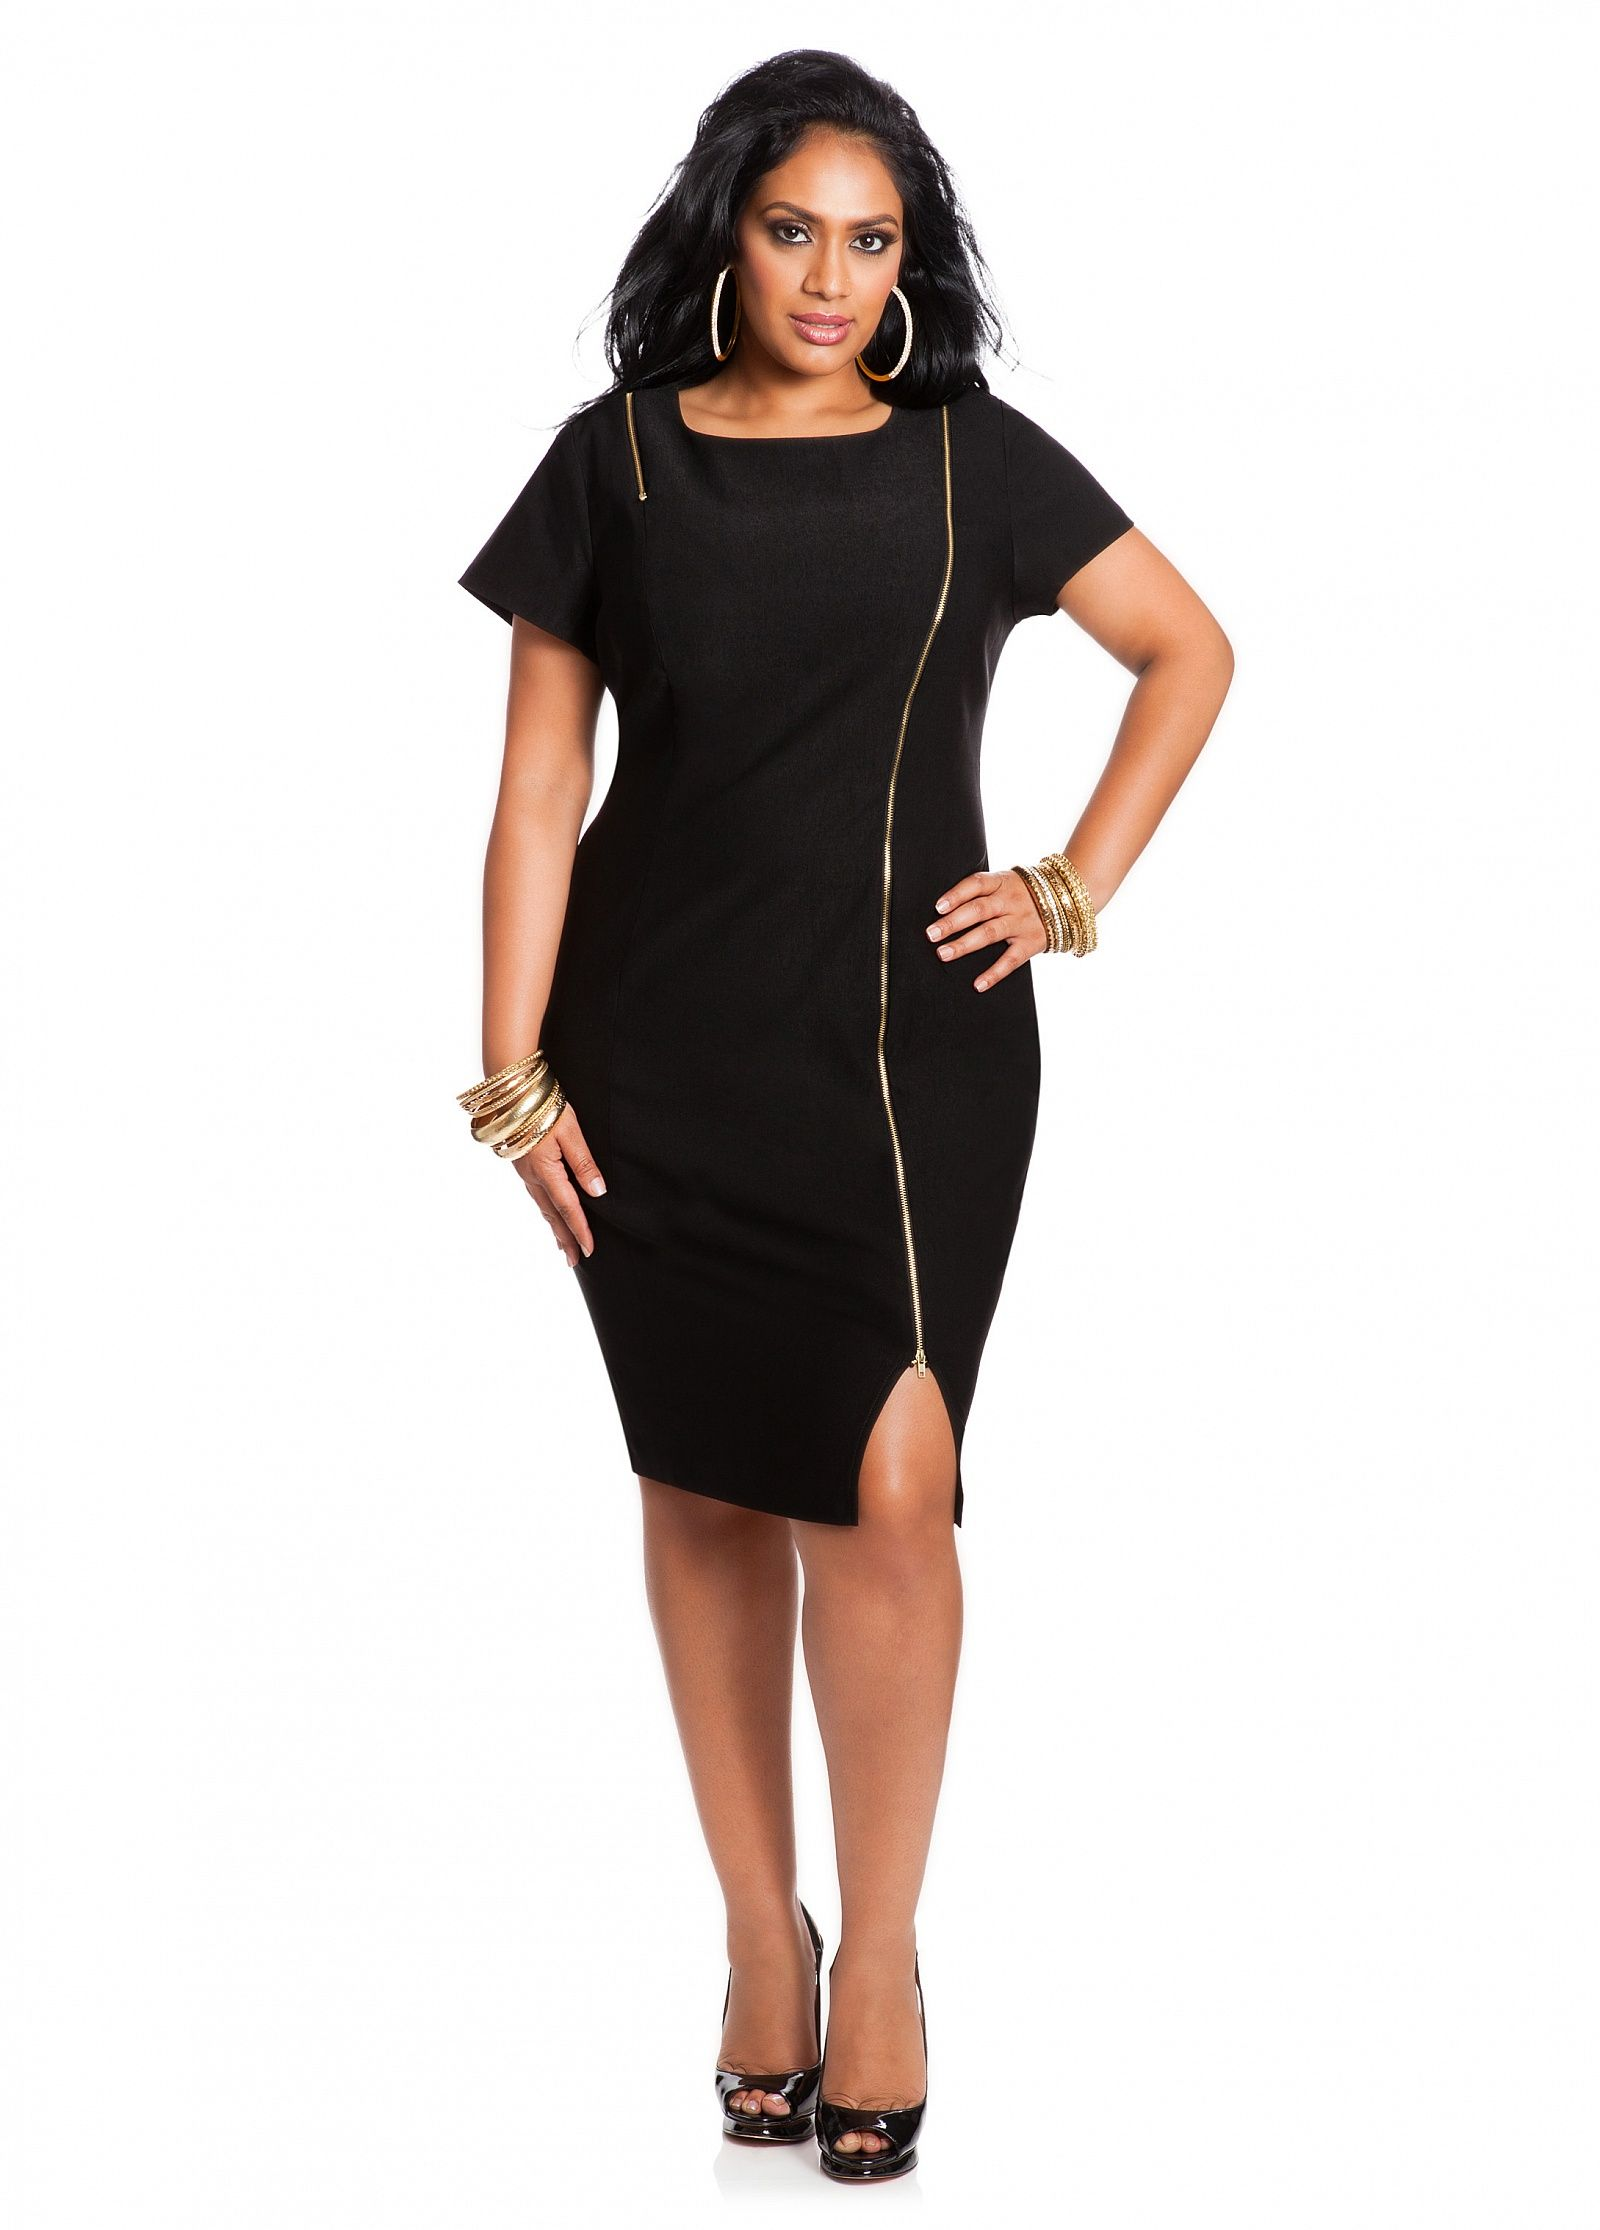 ashley stewart: asymmetrical zipper front dress | best dressed